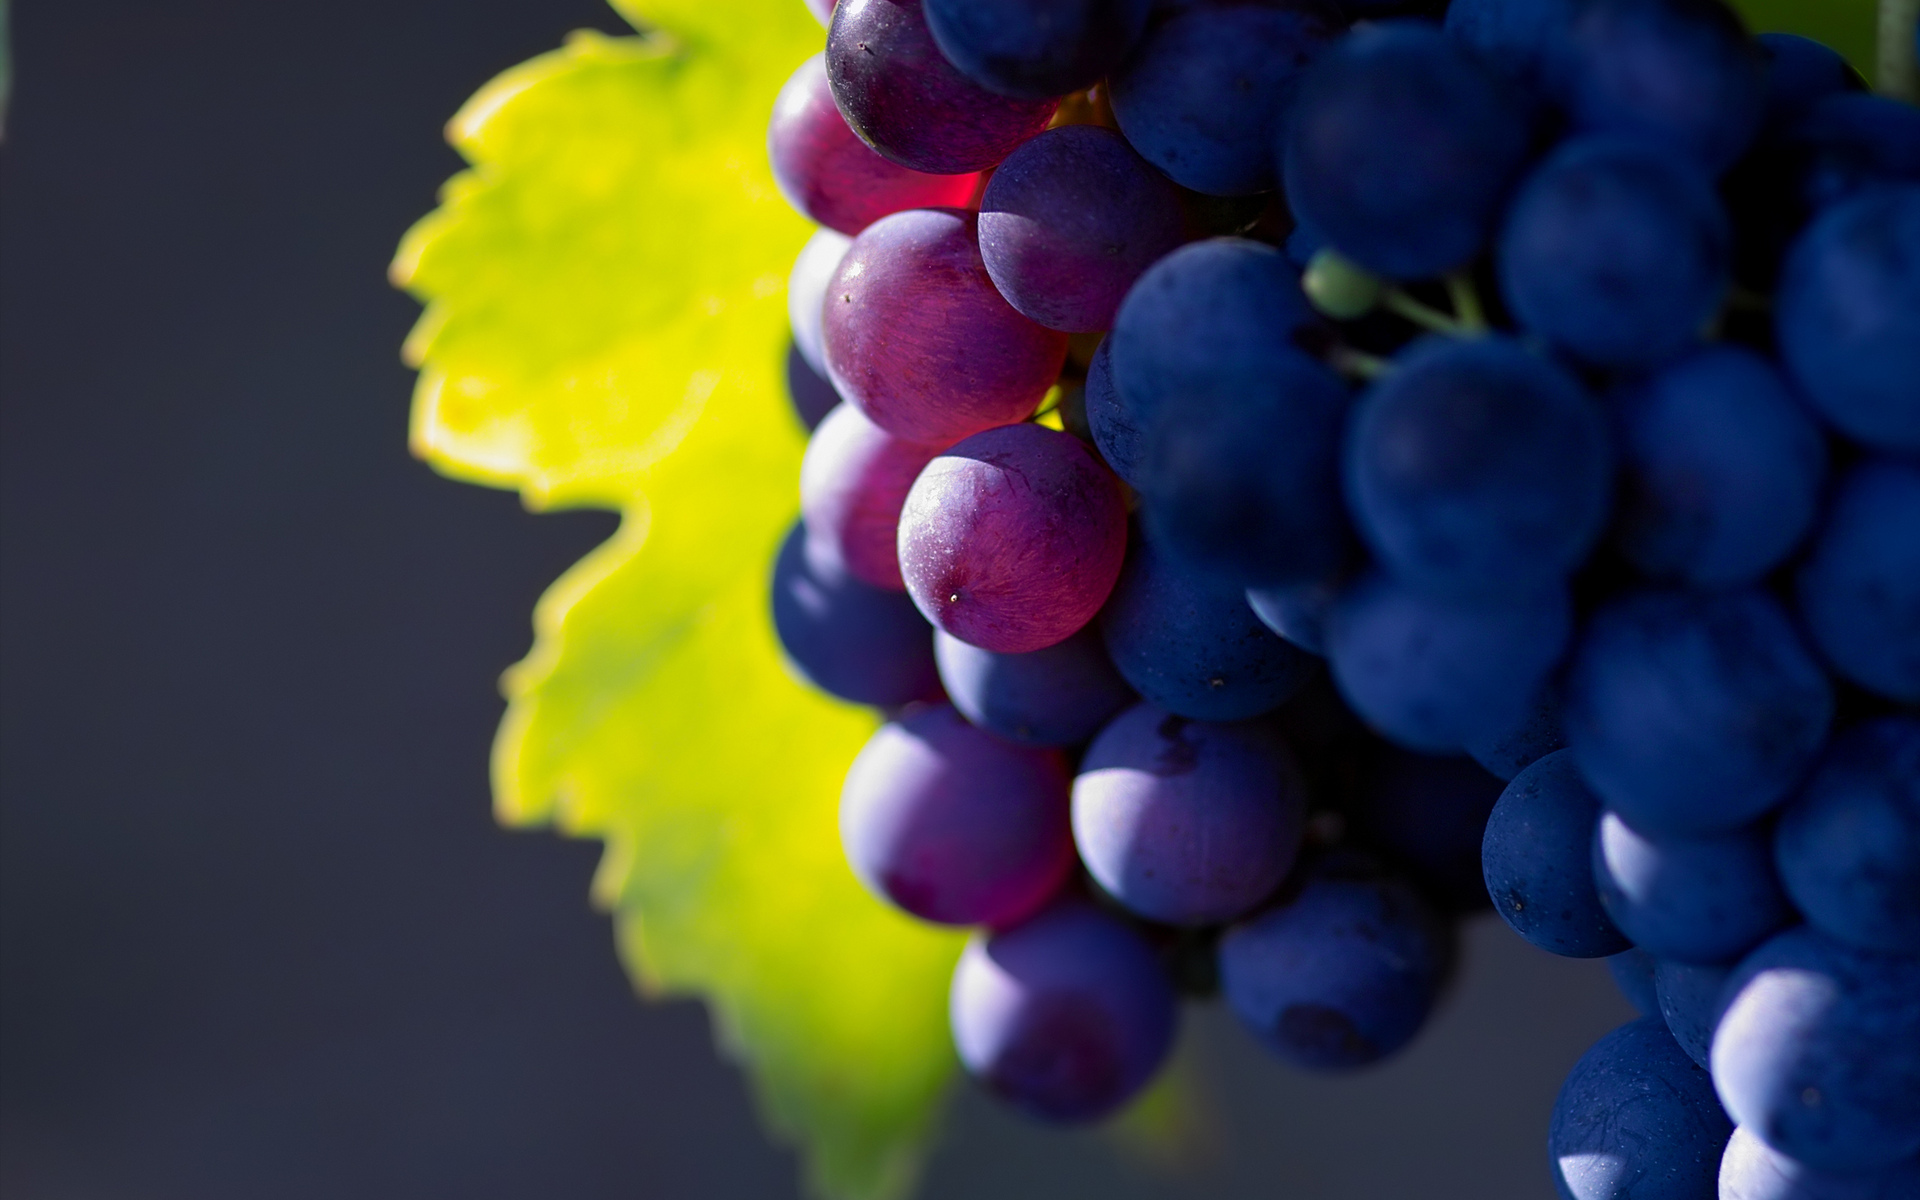 macro photo, grape, ����, ������, ��������, nature wallpapers, ����� ����, fruit, �������, ������� ����������